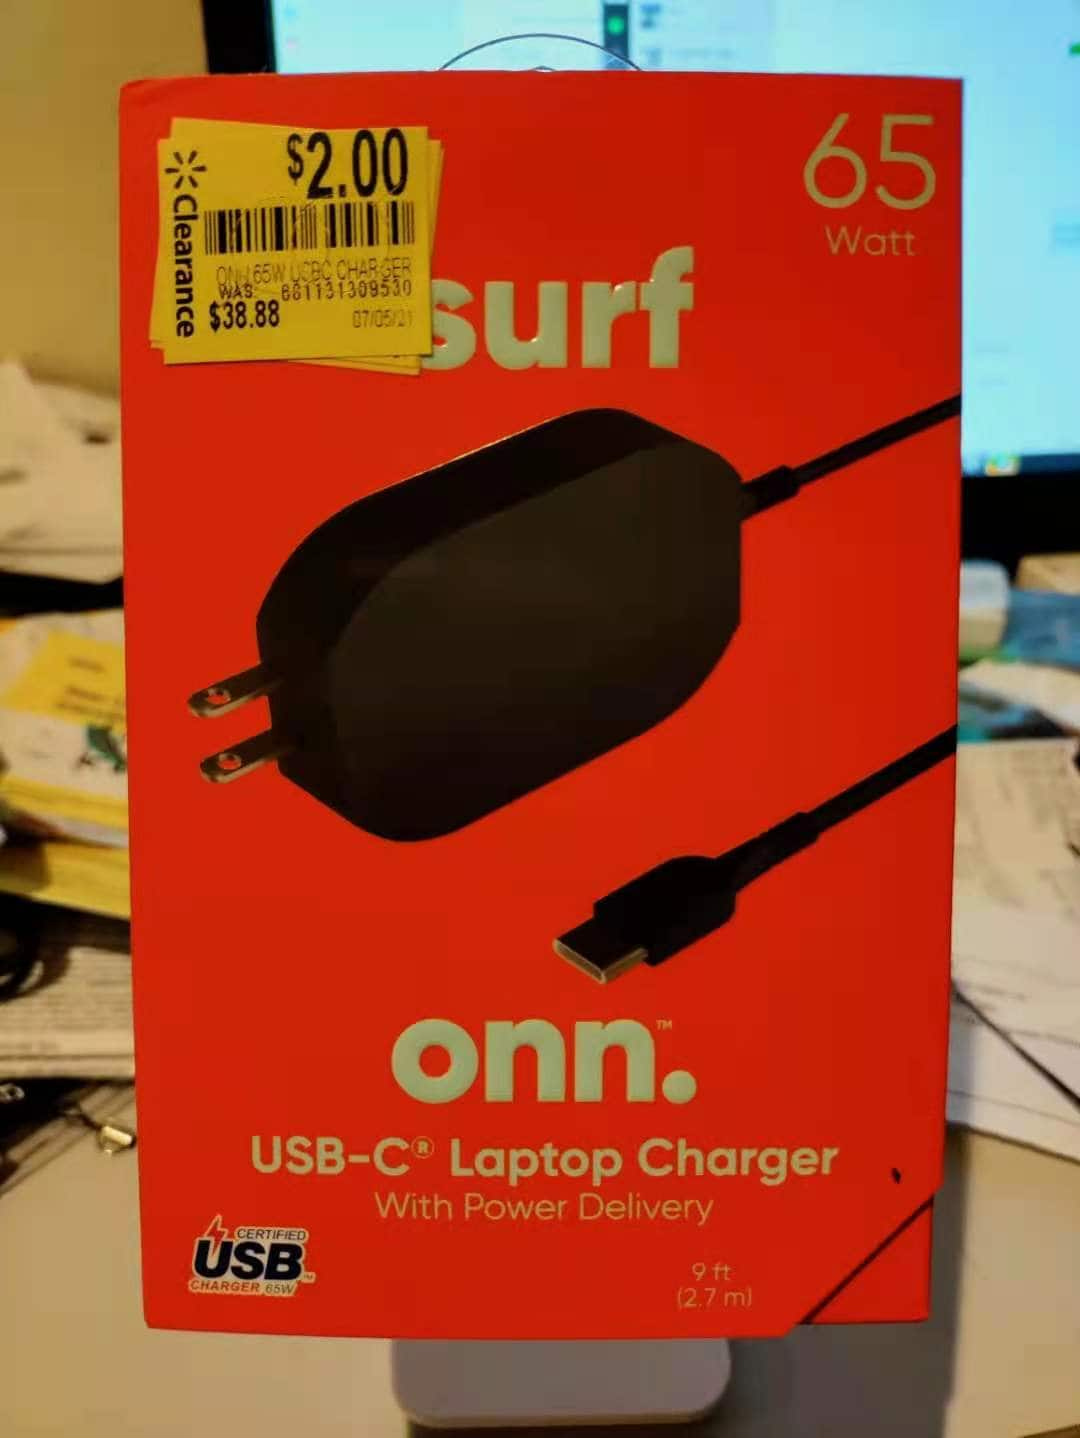 USB-C 65W Laptop/phone/pad Charger with PD (Power Delivery) onn $2 more or less in BM Walmart YMMV